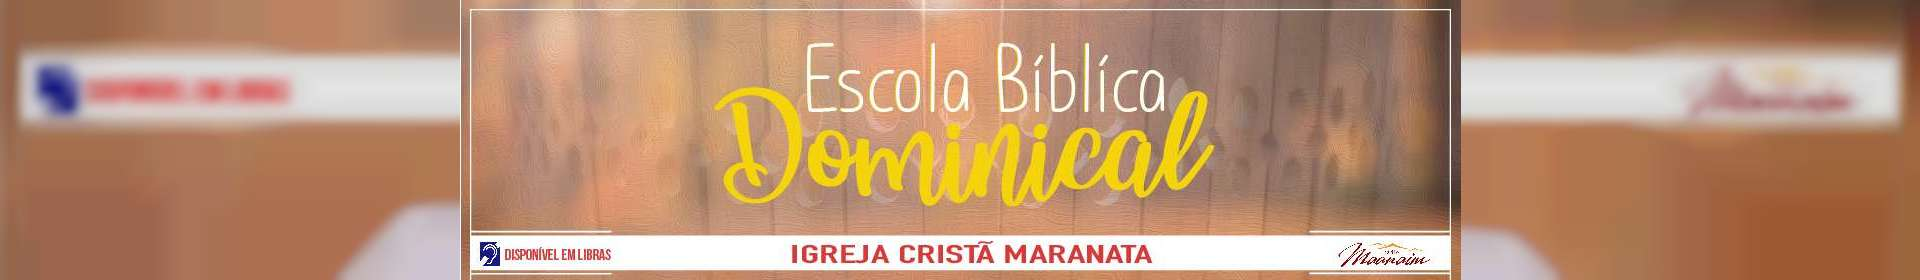 Escola Bíblica Dominical - 23/06/2019